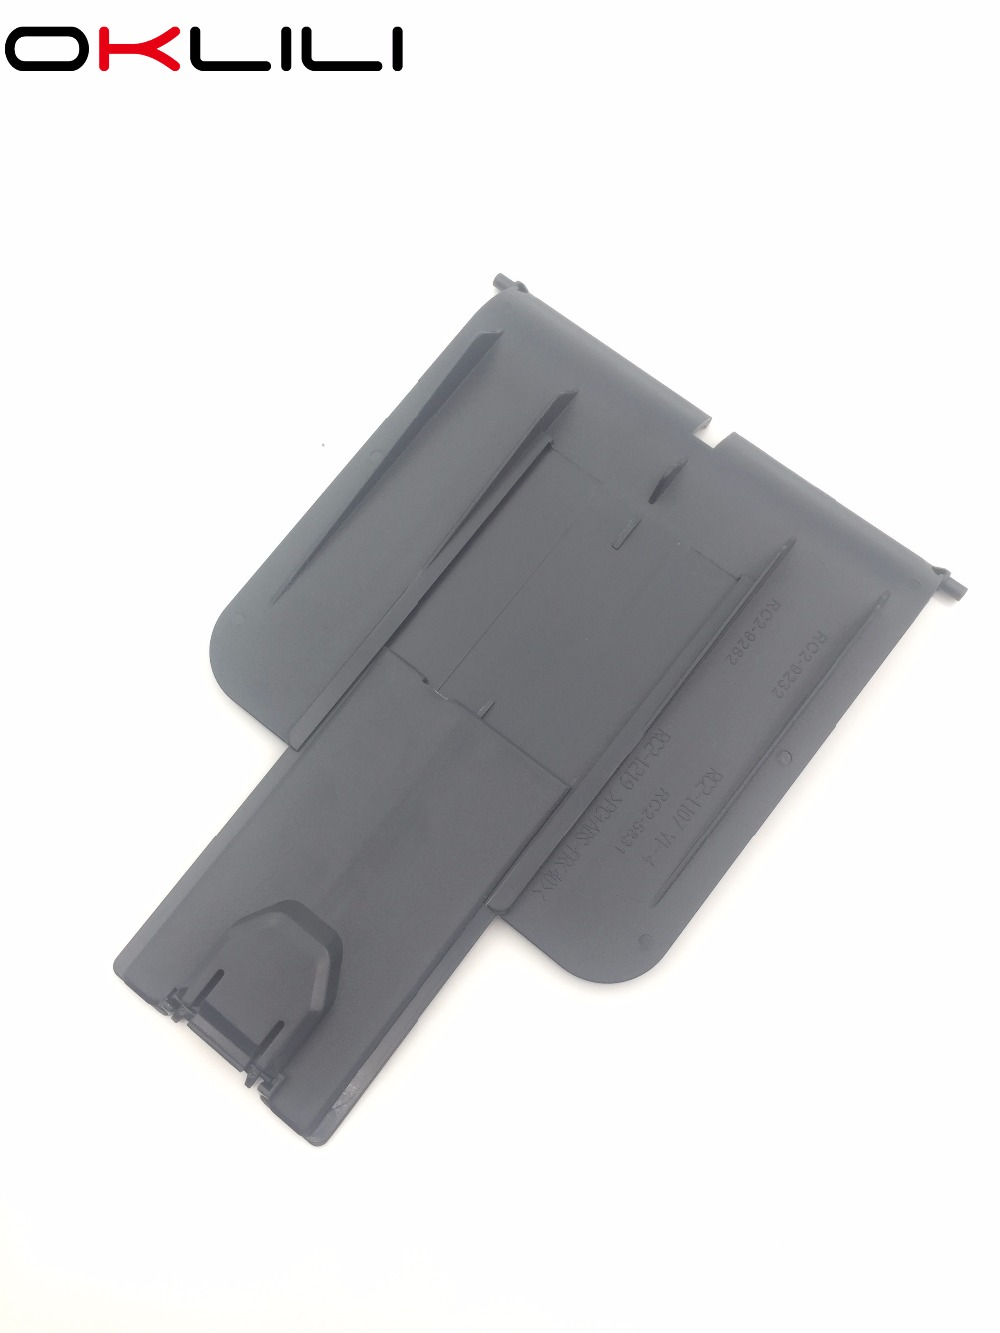 NEW RM1-6903-000 Paper Output Delivery Tray for HP P1102 P1102w P1102s M1536 P1005 P1006 P1007 P1008 P1106 P1108 P1109 P1607 airline ao st 06